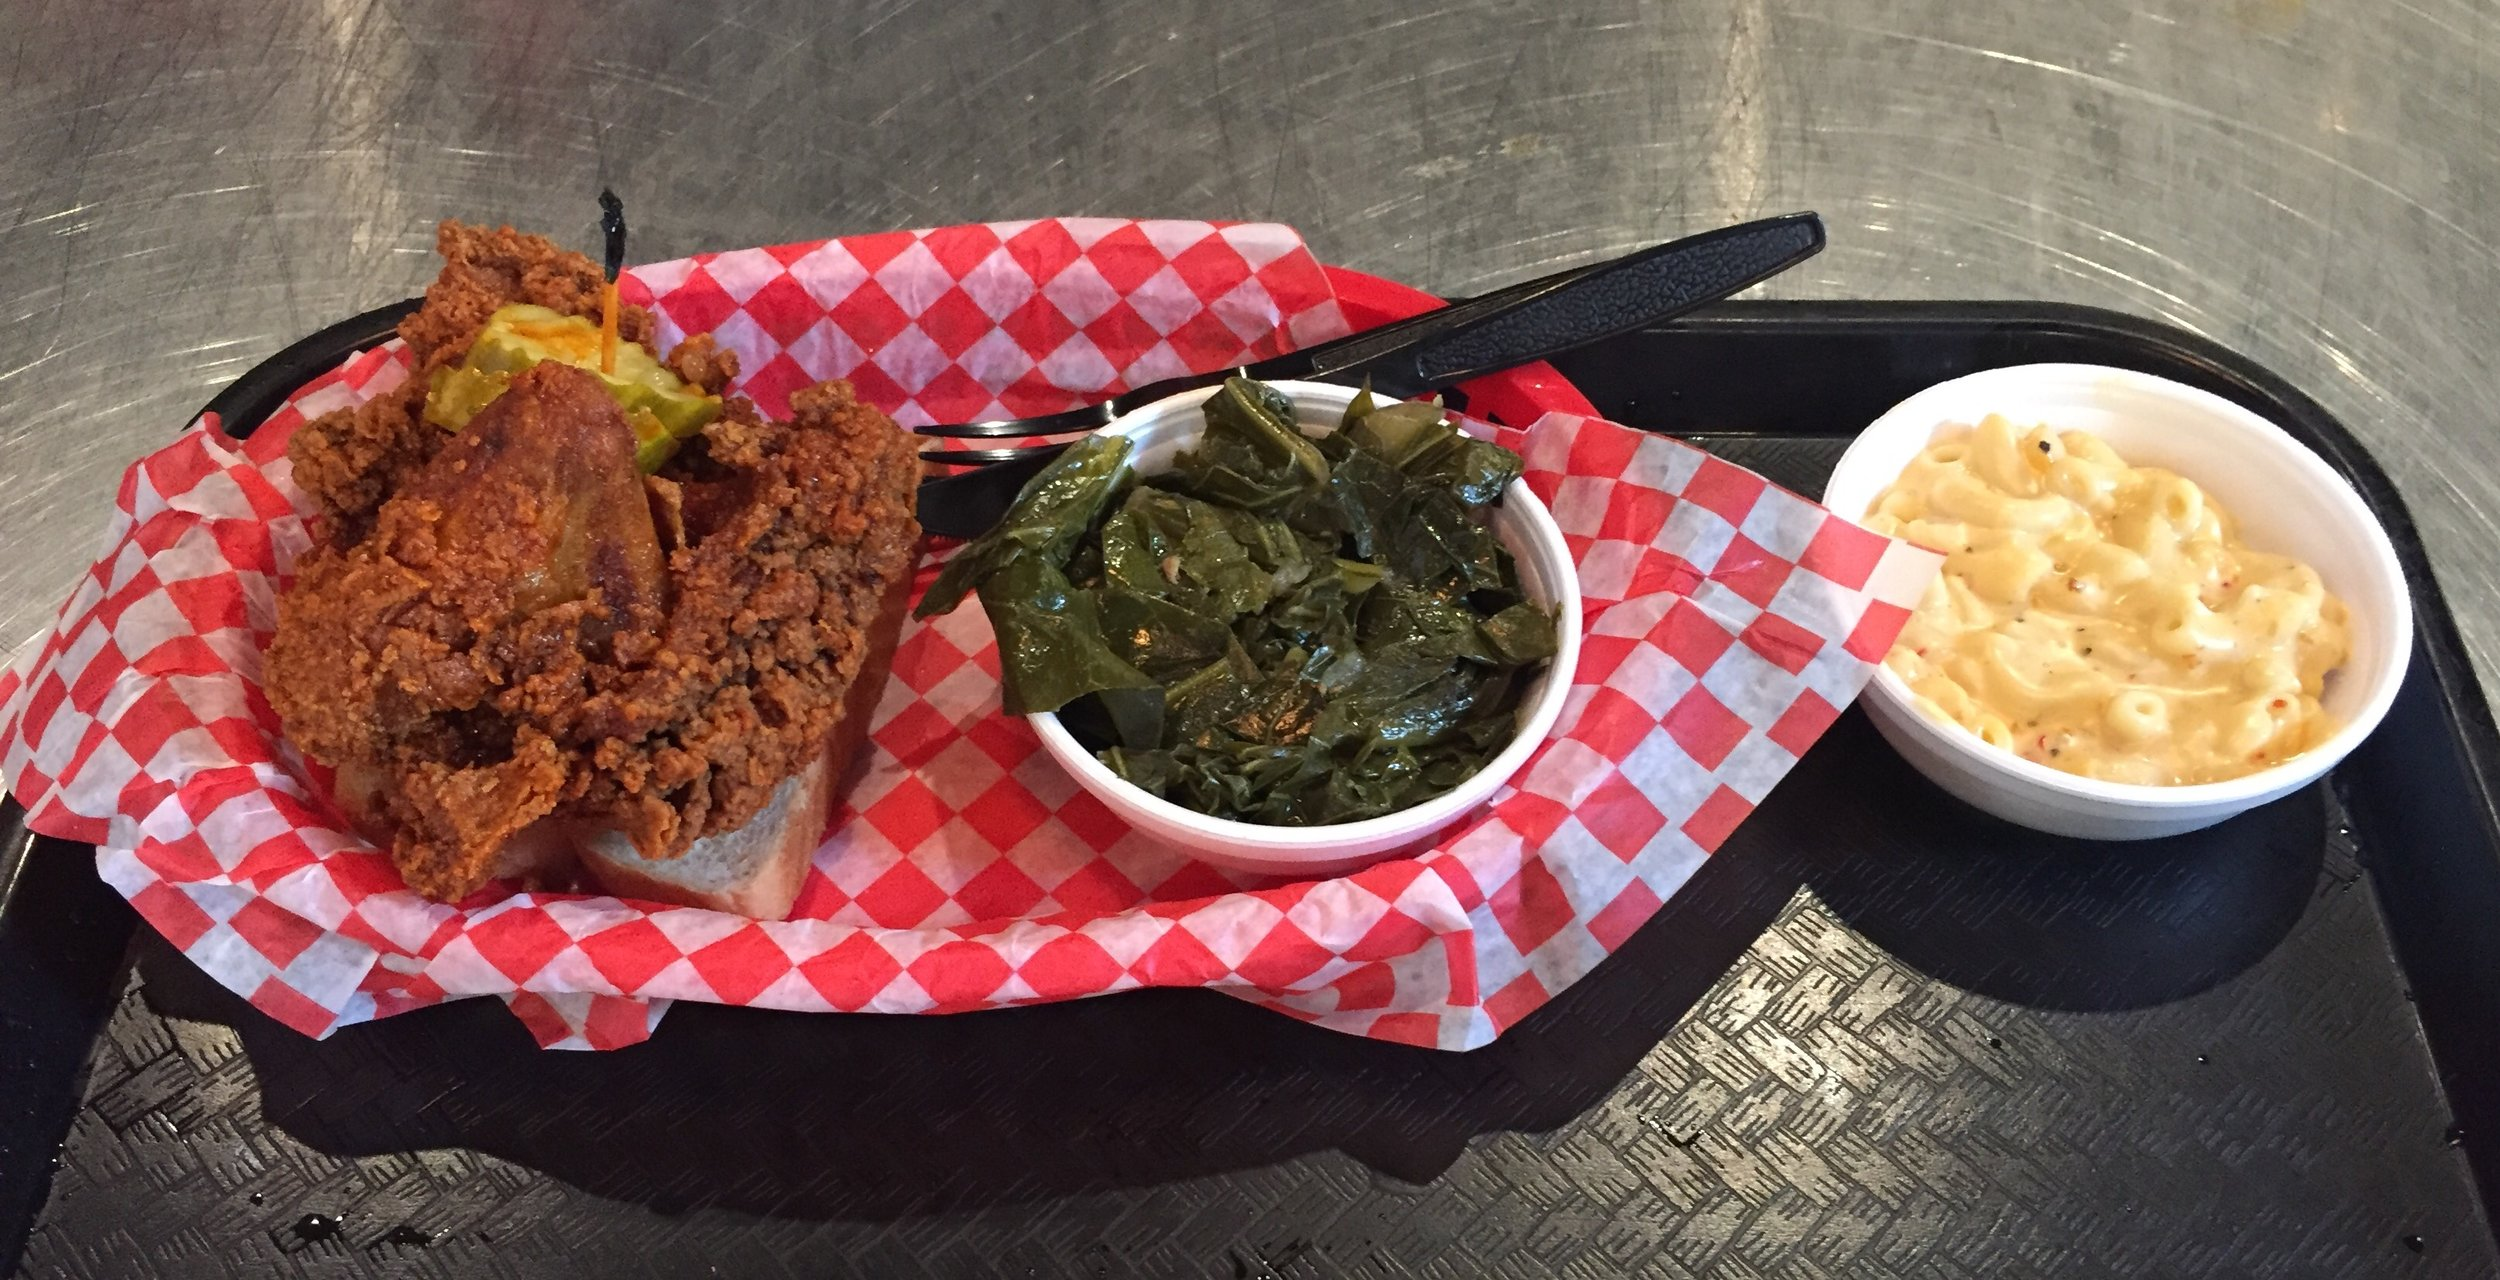 Hattie B's - Hot chicken (mild), southern greens, and pimento macaroni and cheese.